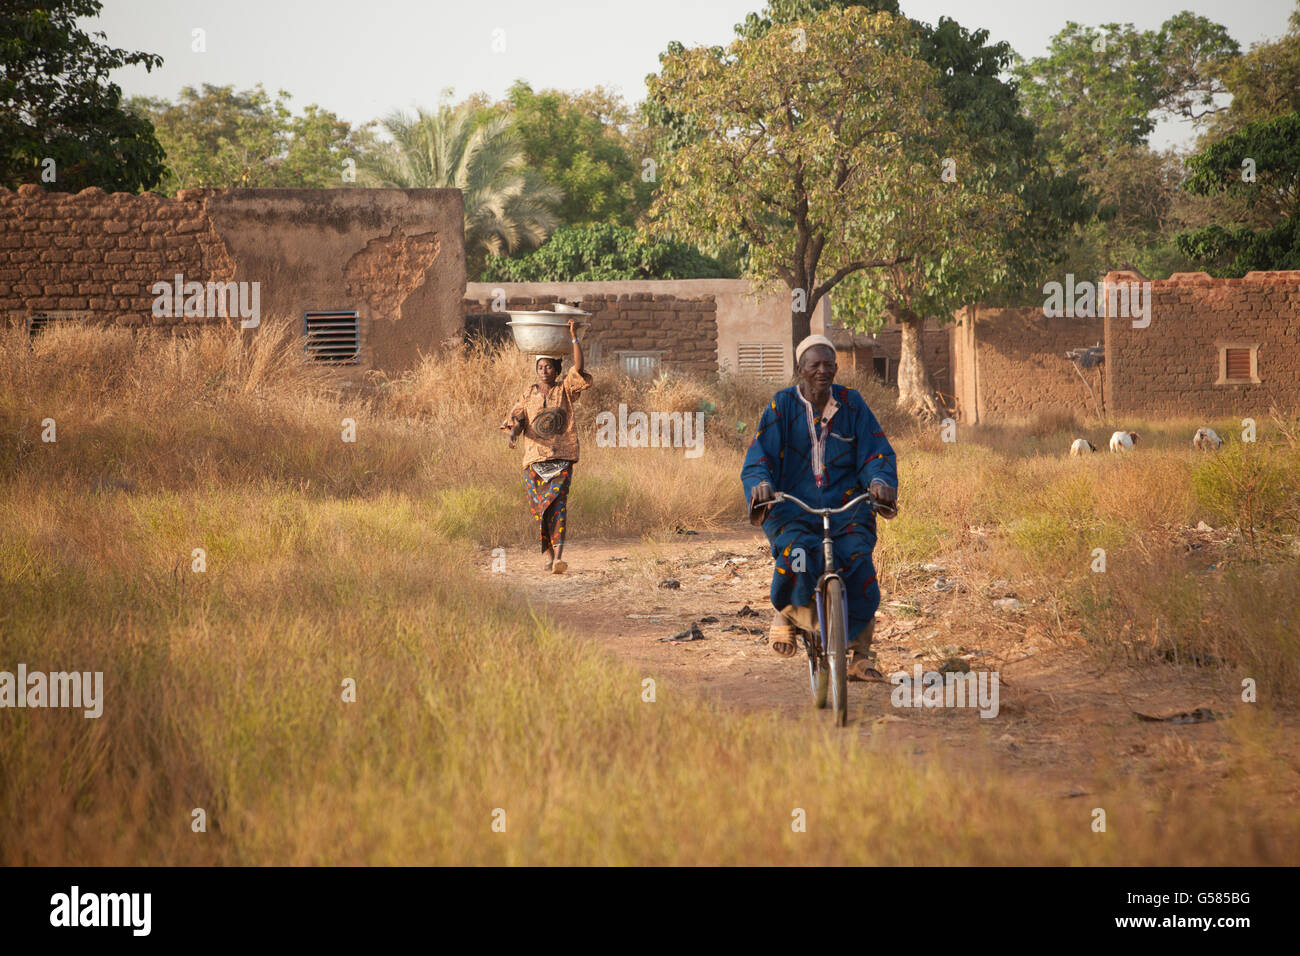 Bobo Dioulasso Department village scene, Burkina Faso. - Stock Image